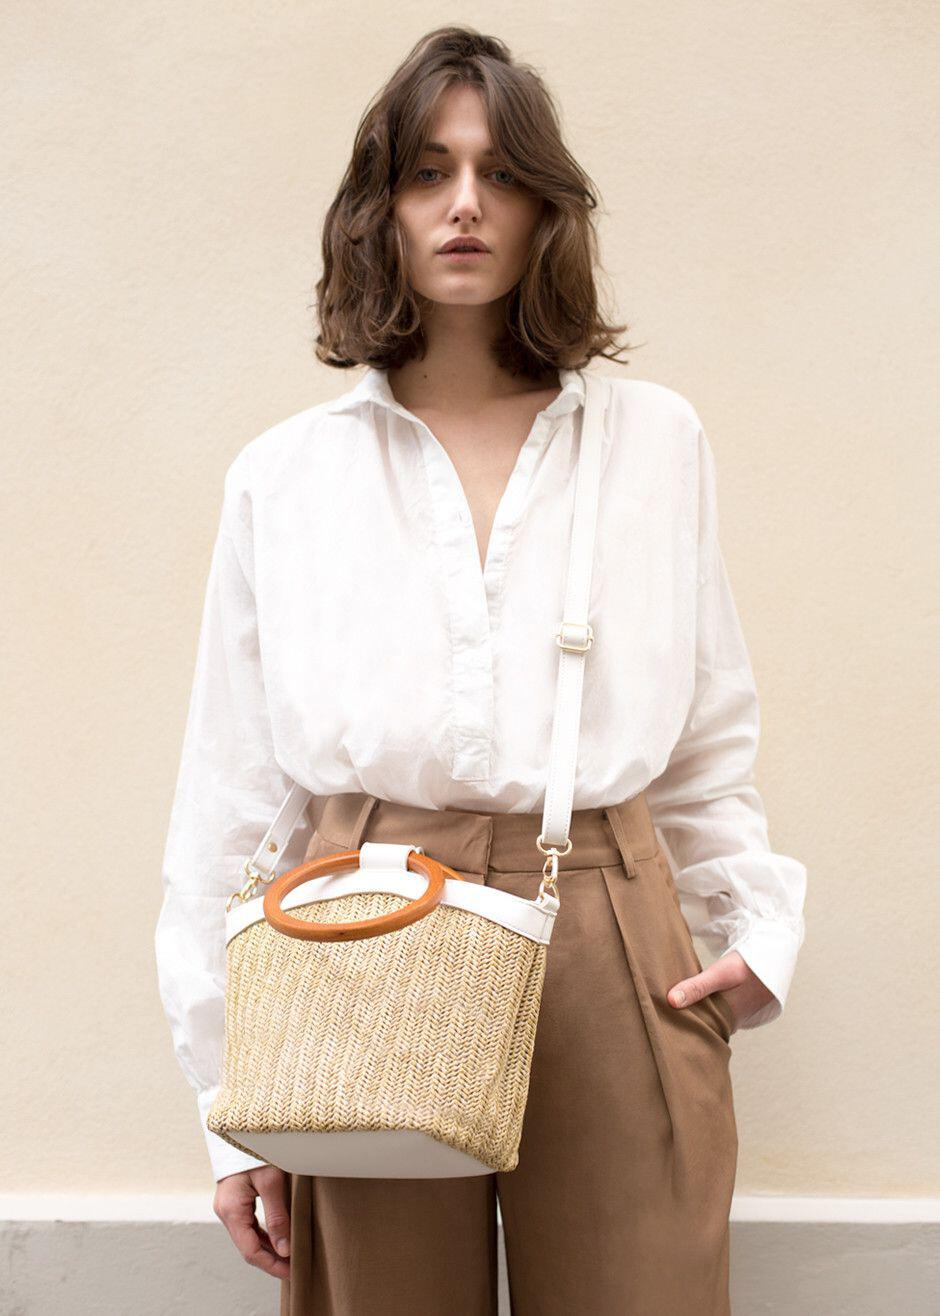 15 stylish woven bag outfits for the summer 14 - 15 stylish woven bag outfits for the summer